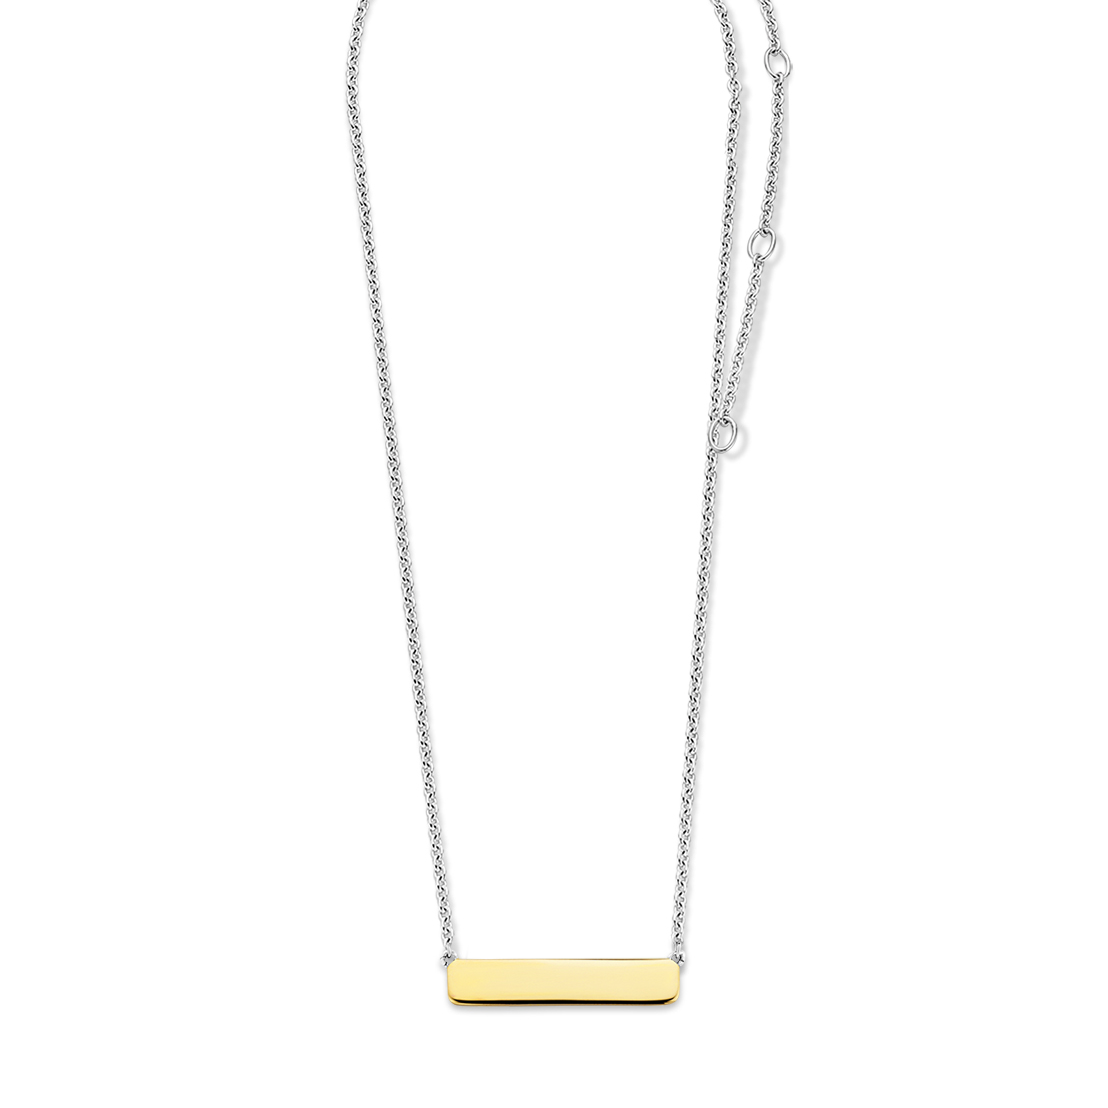 TI SENTO - Milano Necklace 3893SY